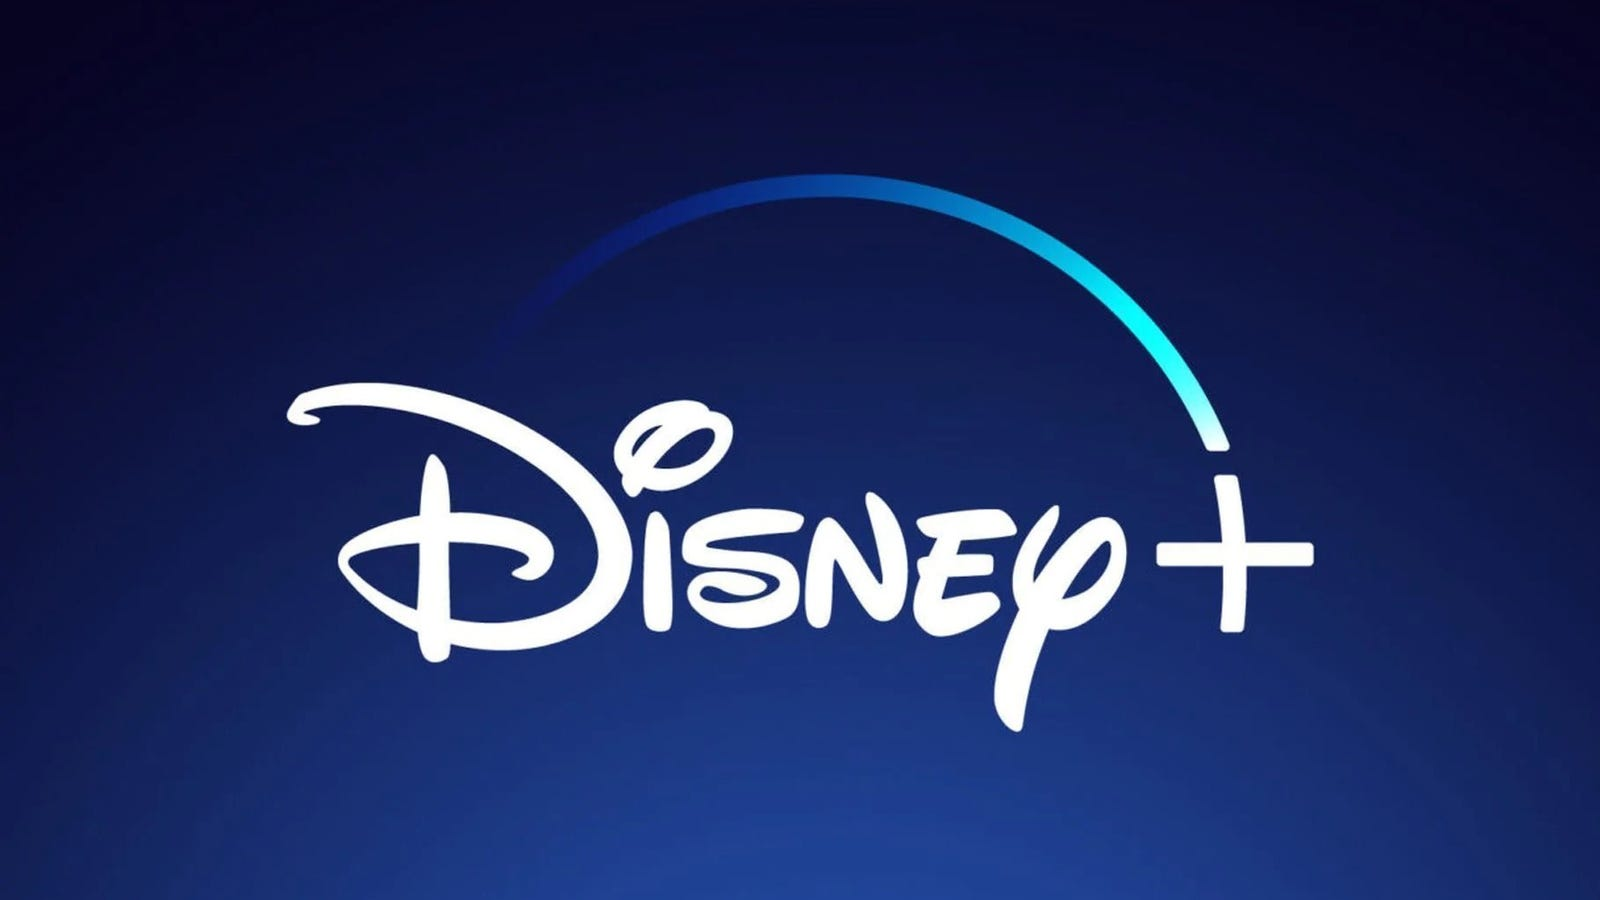 Here's How You Can Get Disney+ for $4 a Month